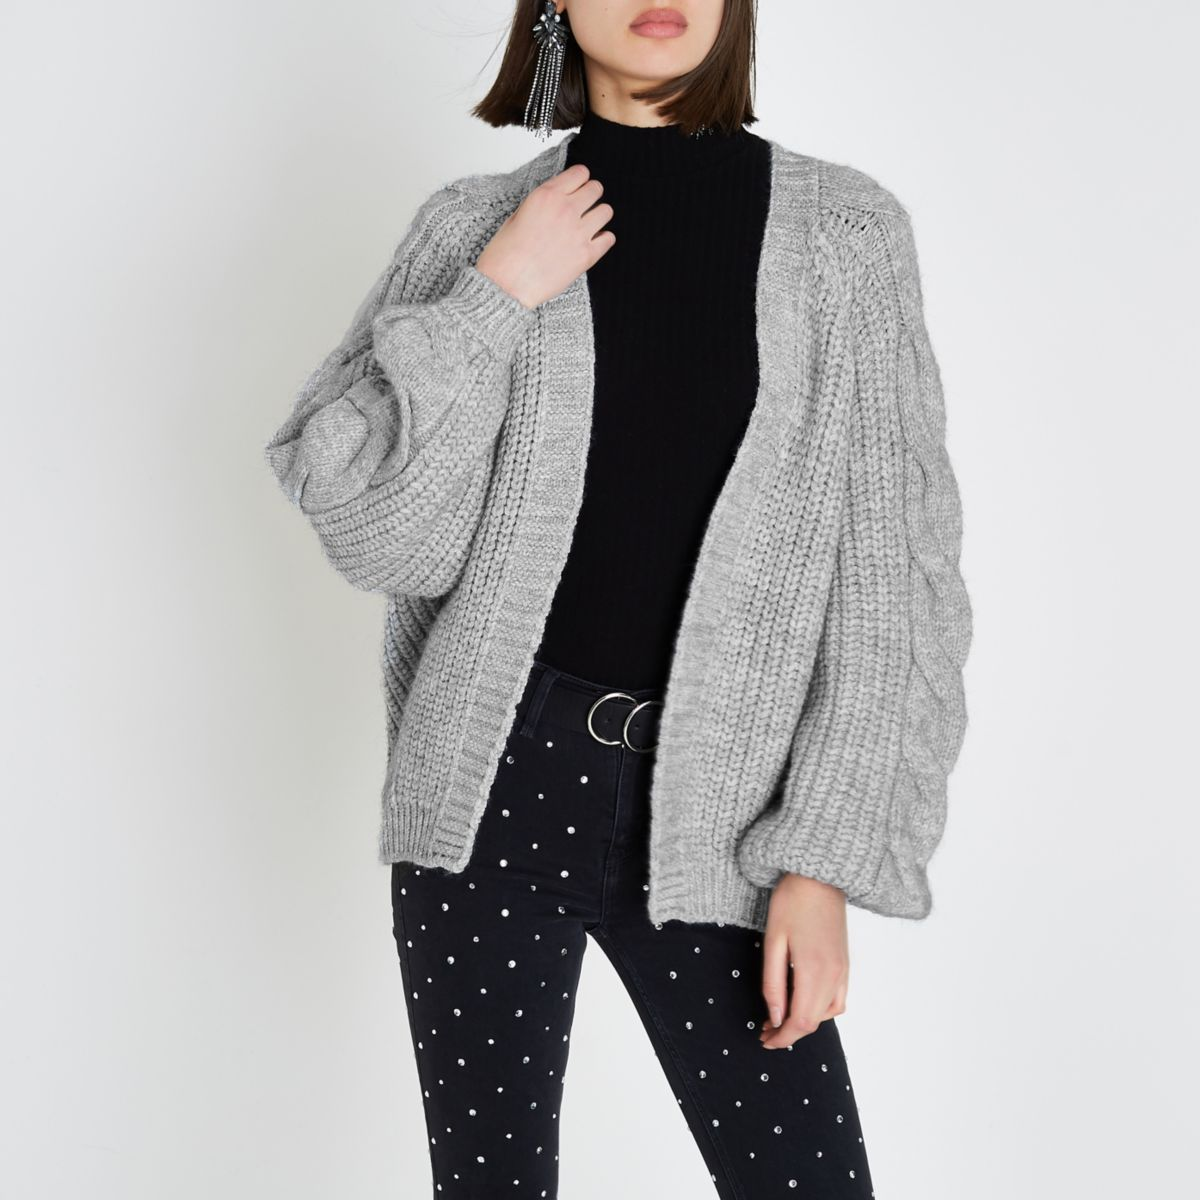 Grey chunky cable knit cardigan - Cardigans - Knitwear - women